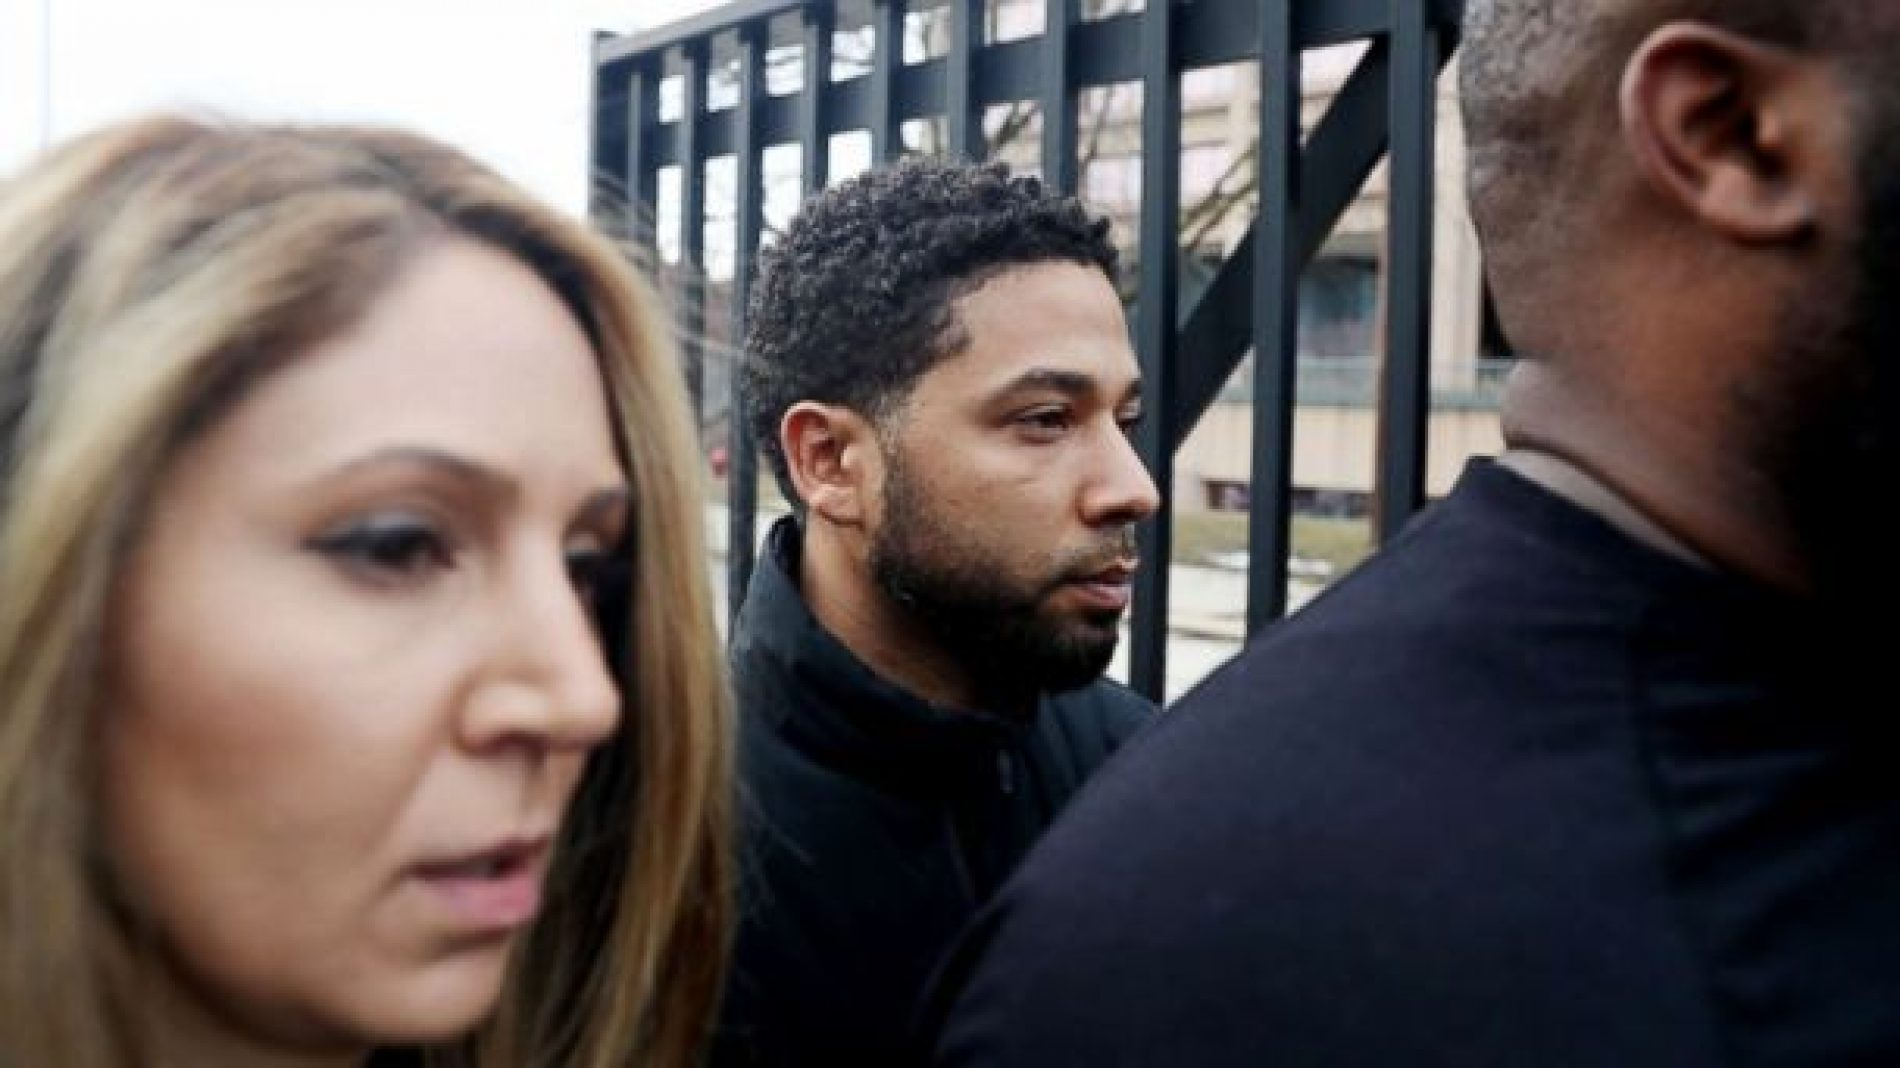 Jussie Smollett is indicted by grand jury on a 16-count felony charge